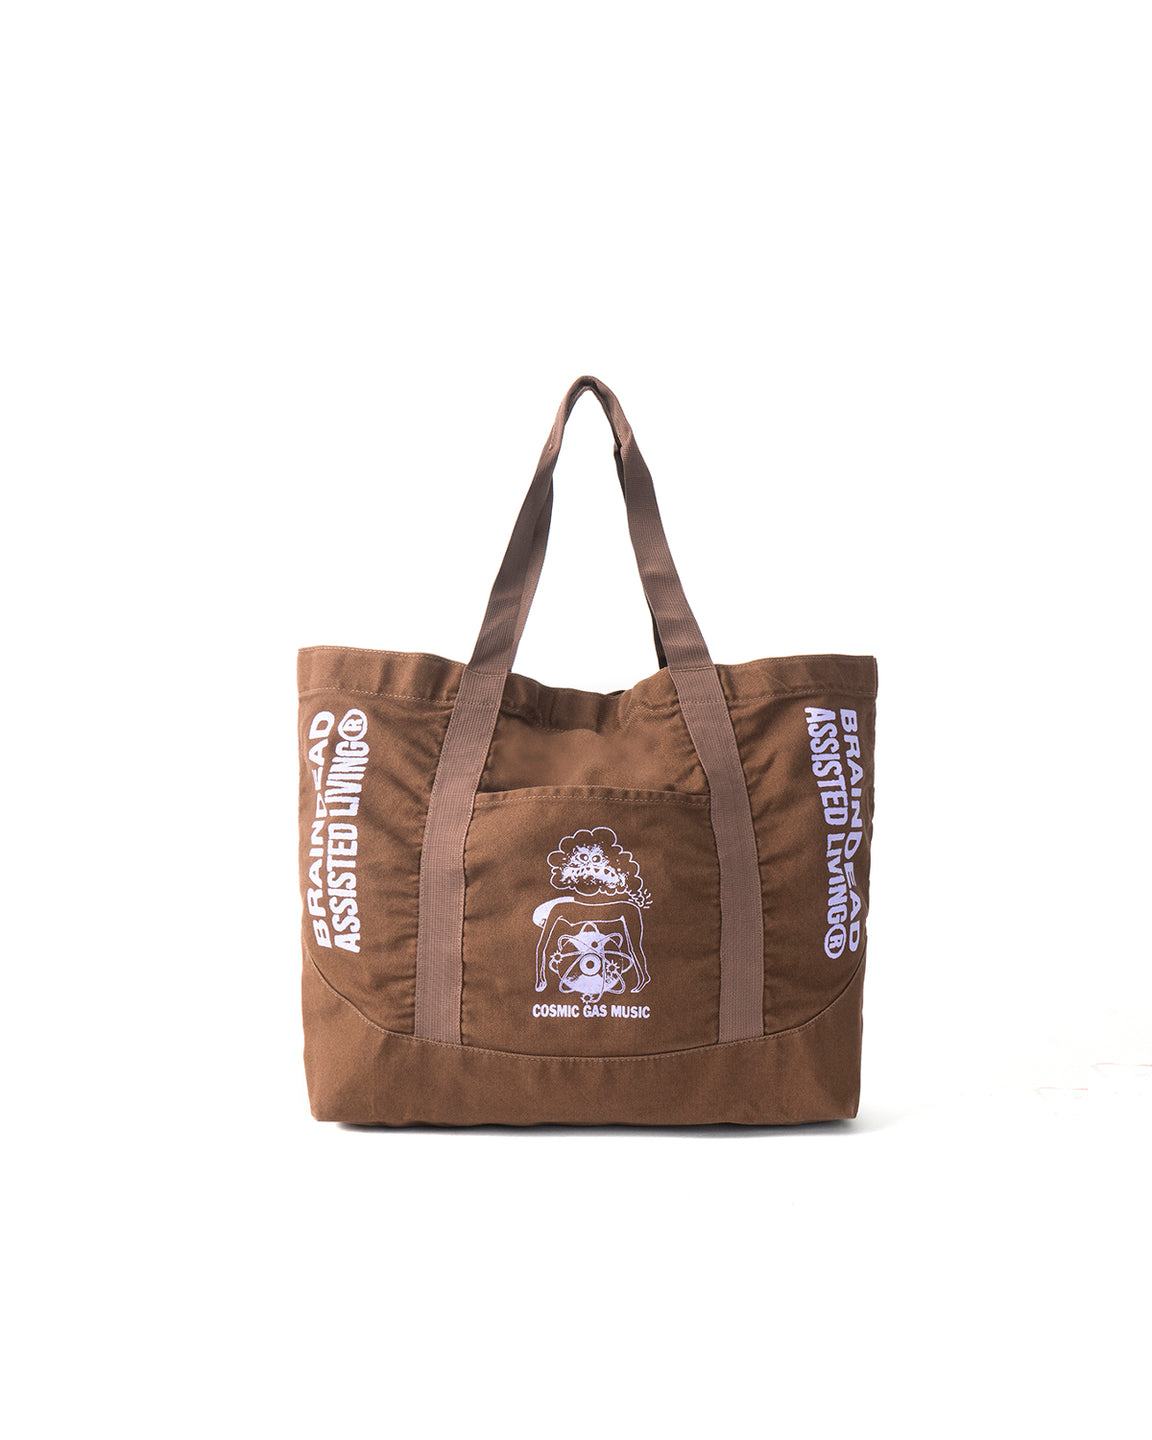 Cosmic Gas Music Tote - Brown